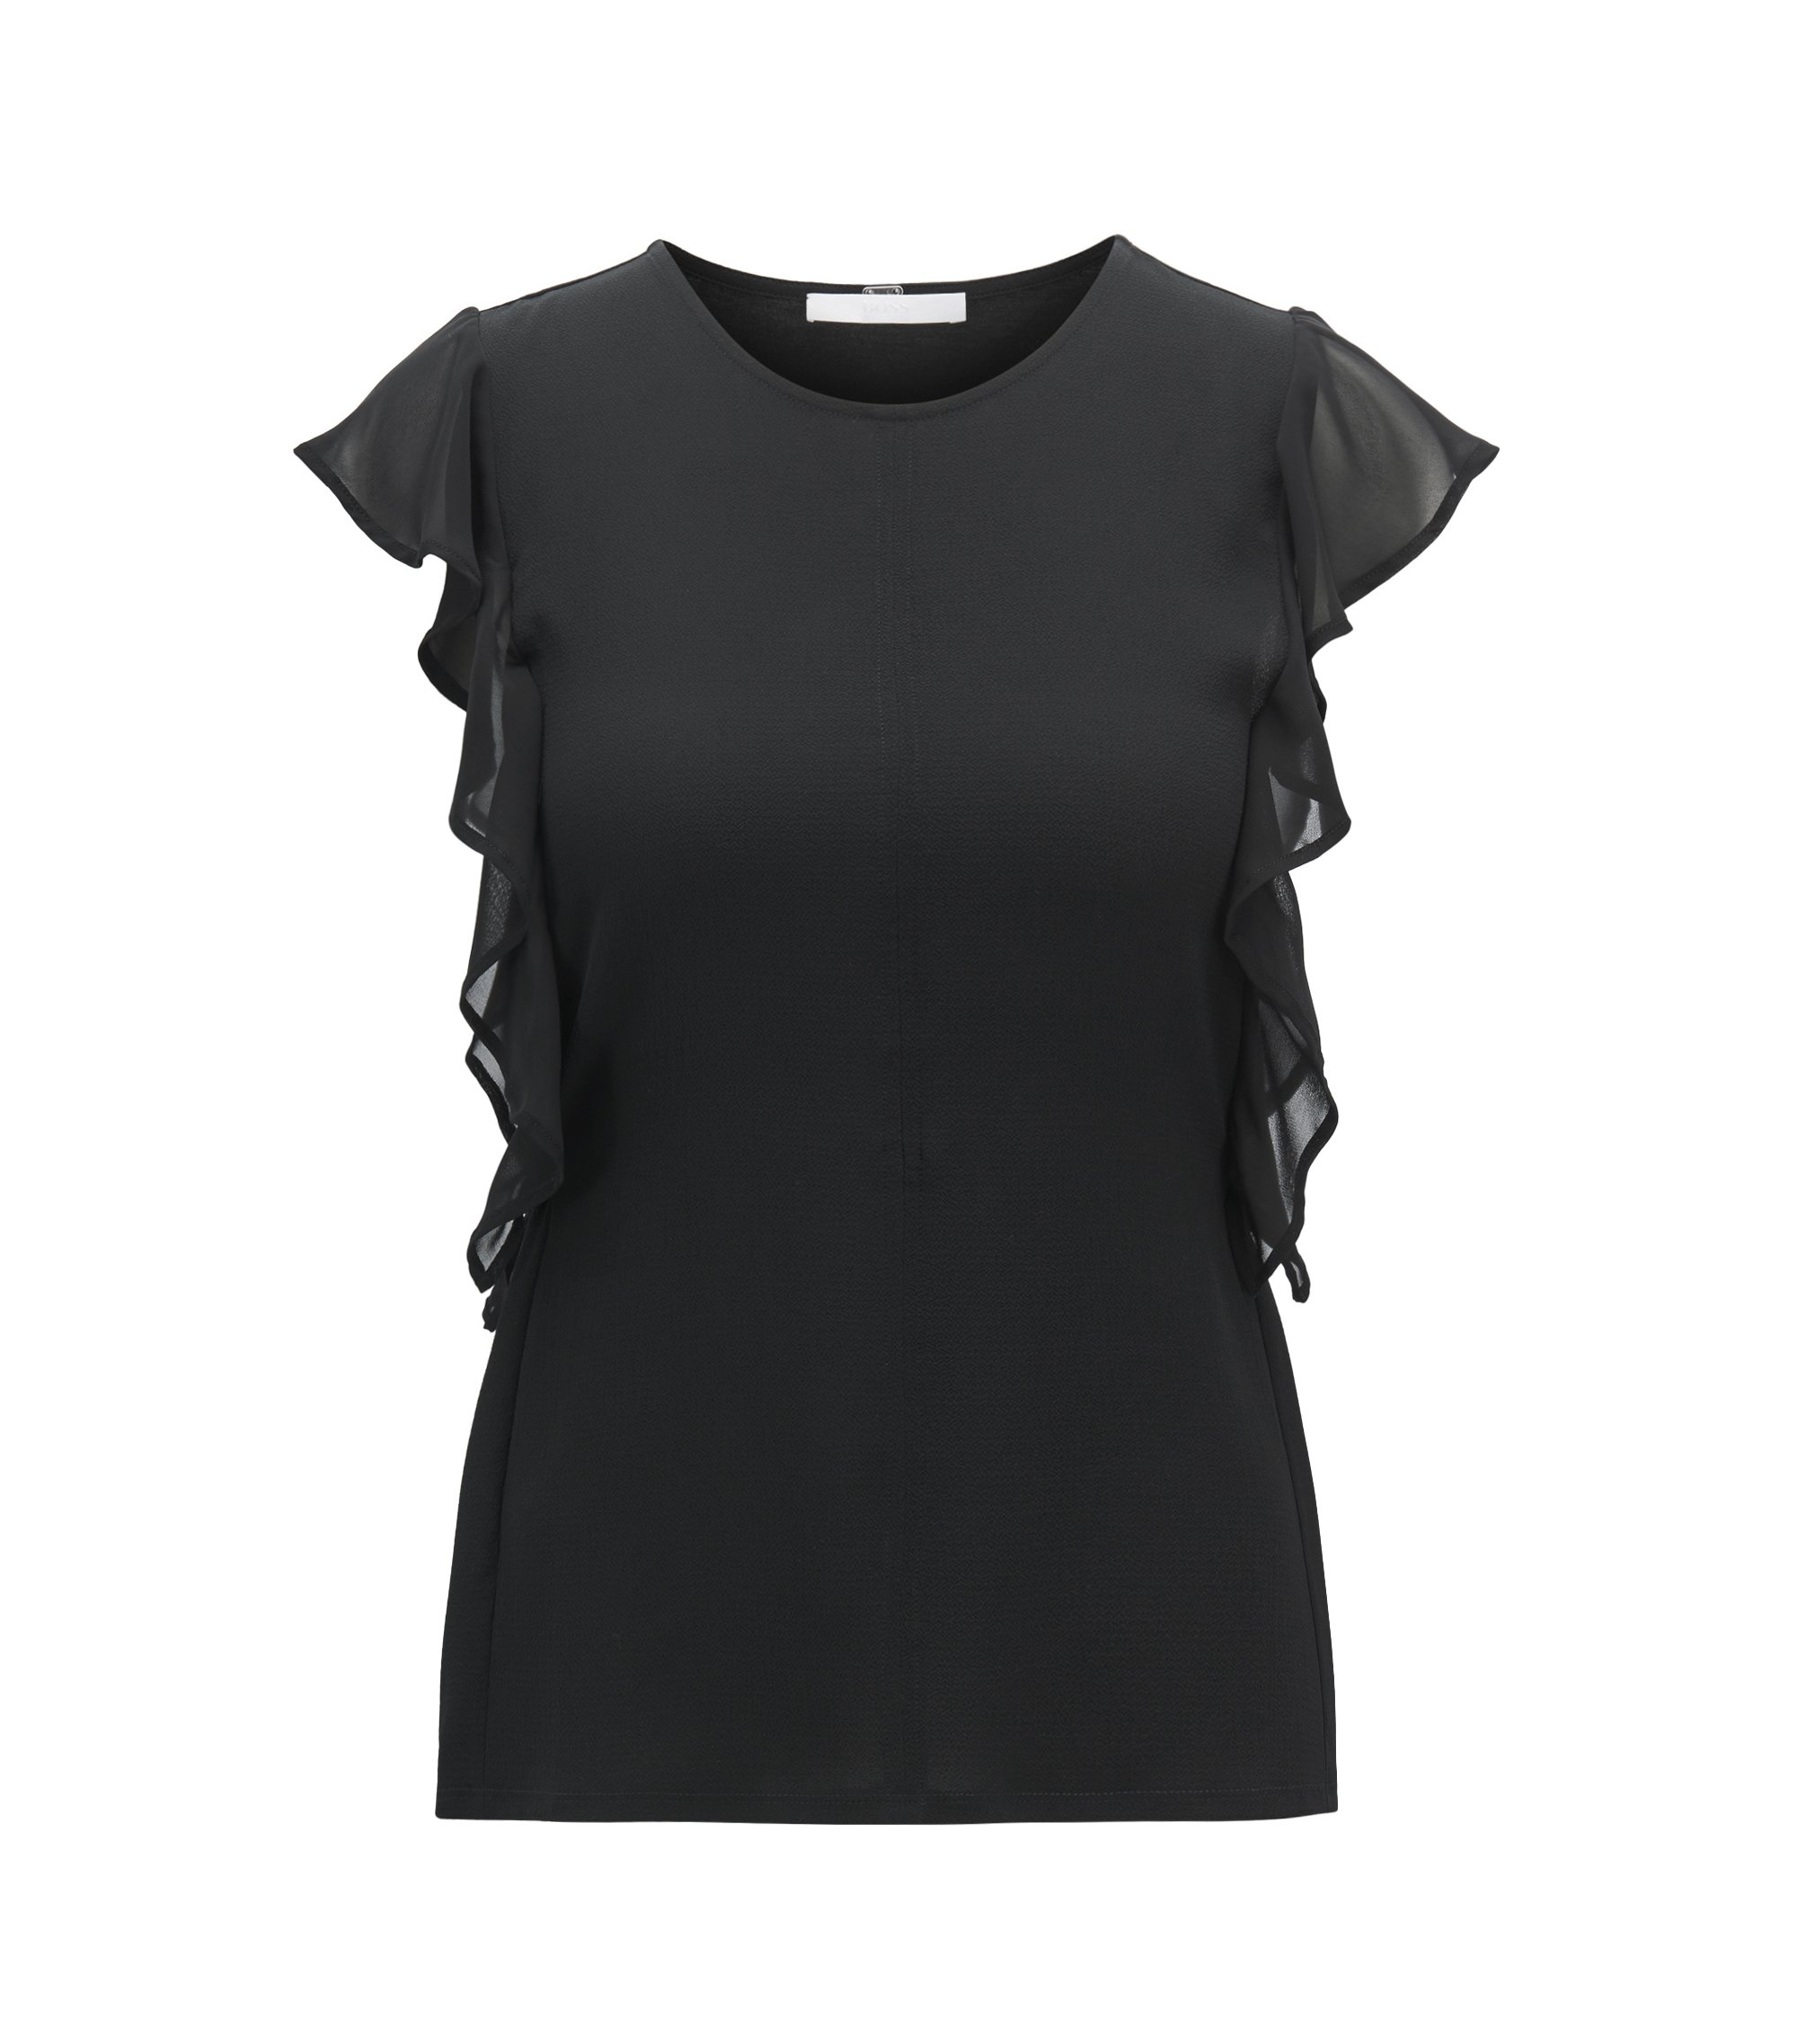 Sleeveless top with frill detail and side-seam buttons, Black